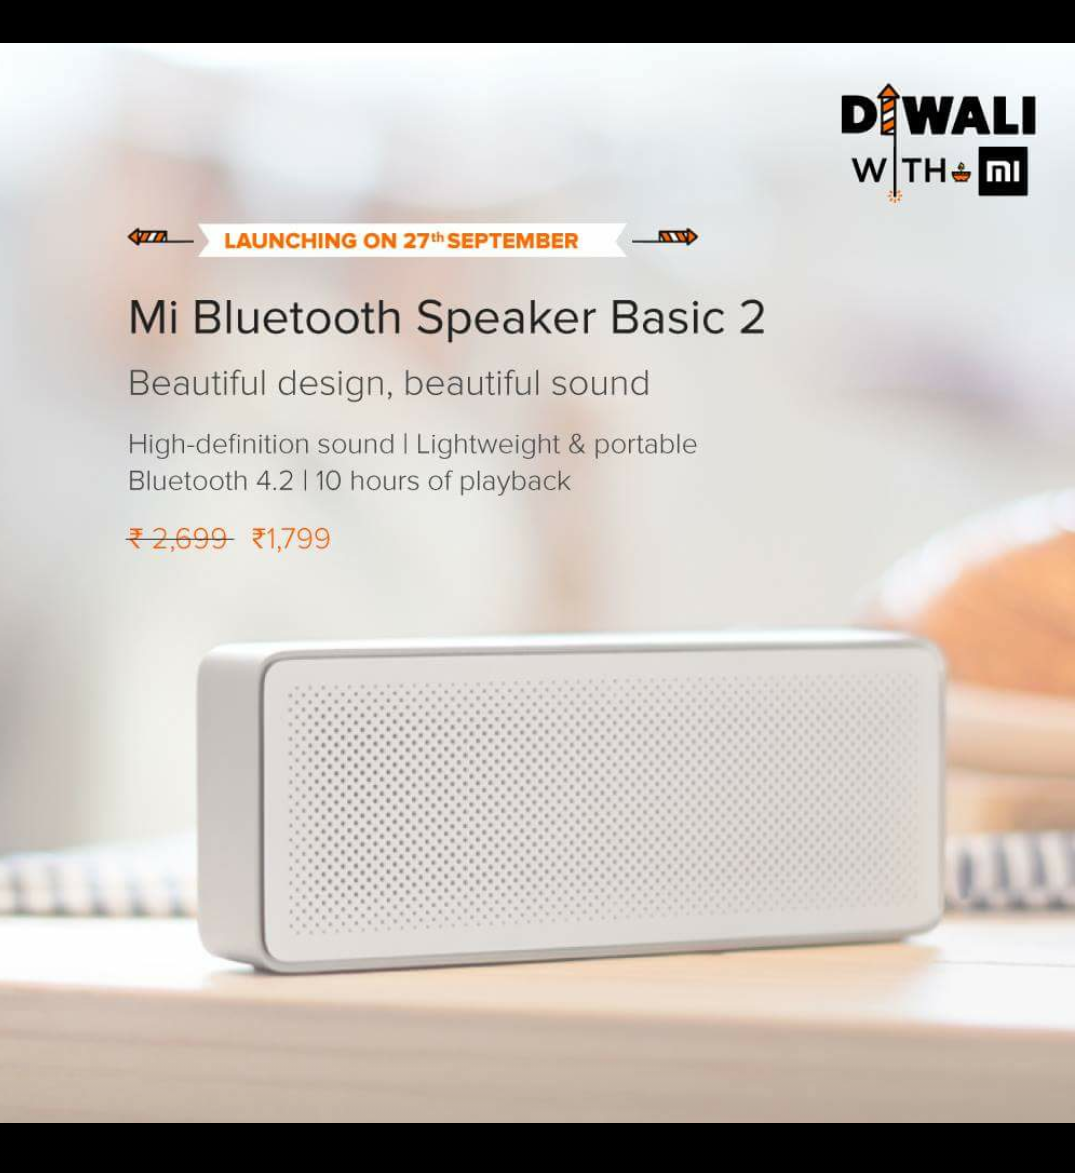 mi bluetooth speaker basic 2 india